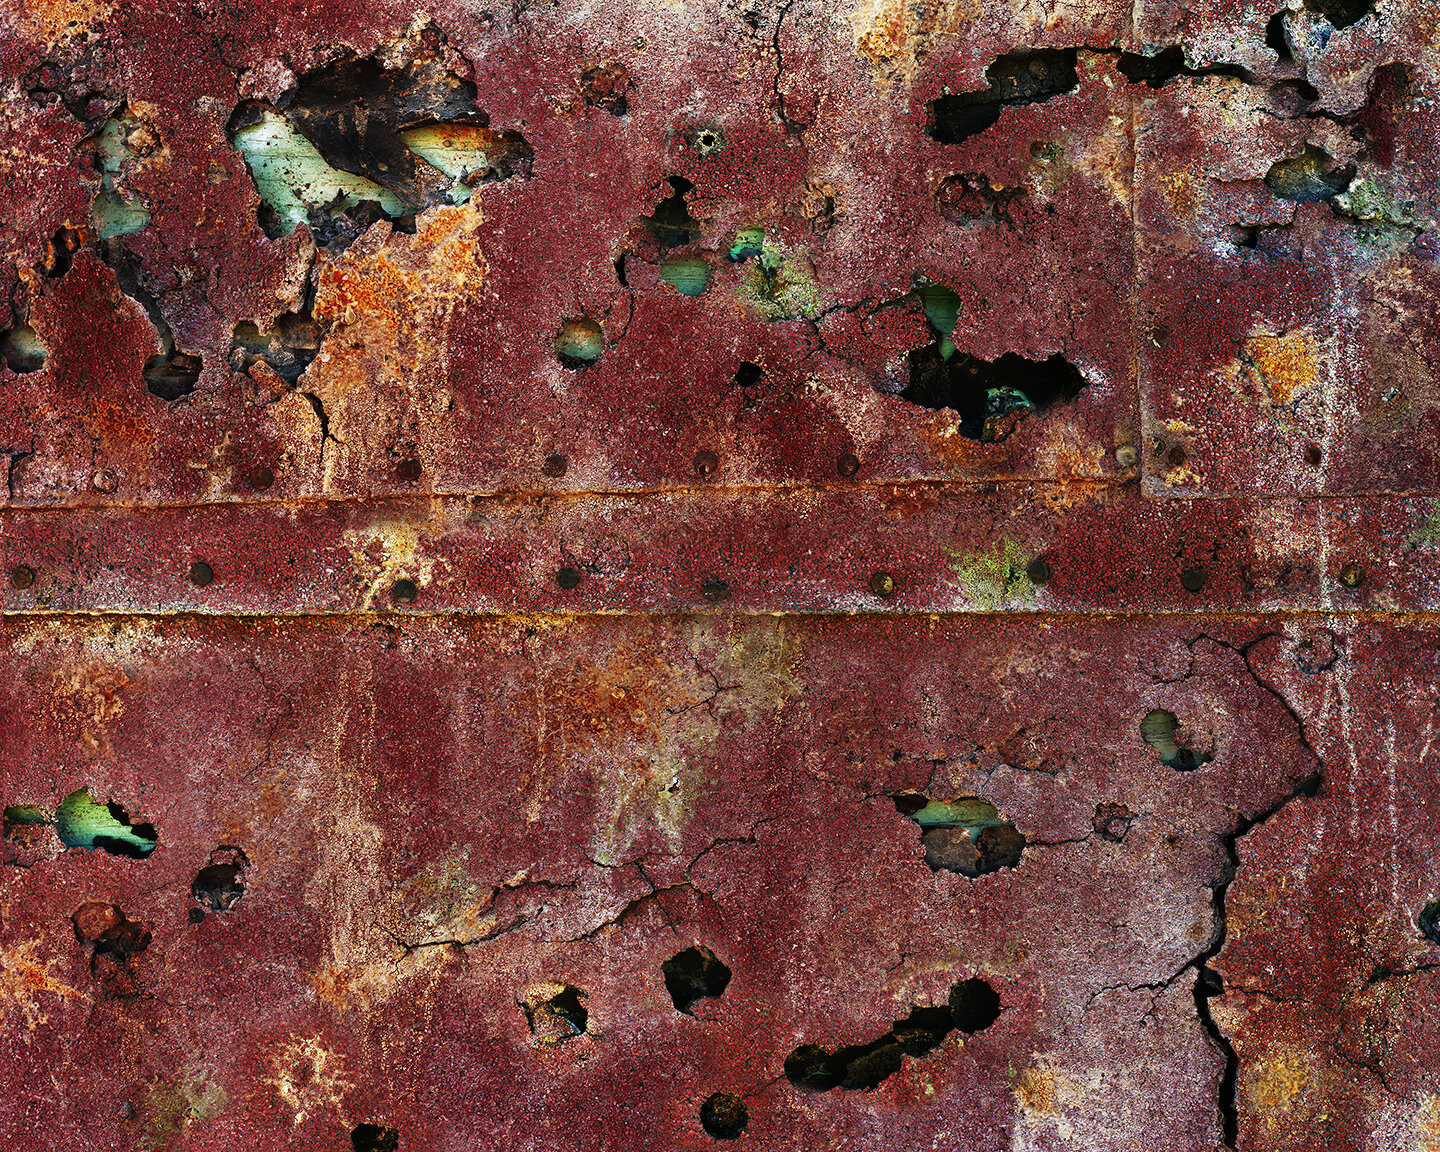 Asbestos Siding on a House Constructed from Disused Railroad Ties, Beowawe, Nevada, 2014 (composite).jpg